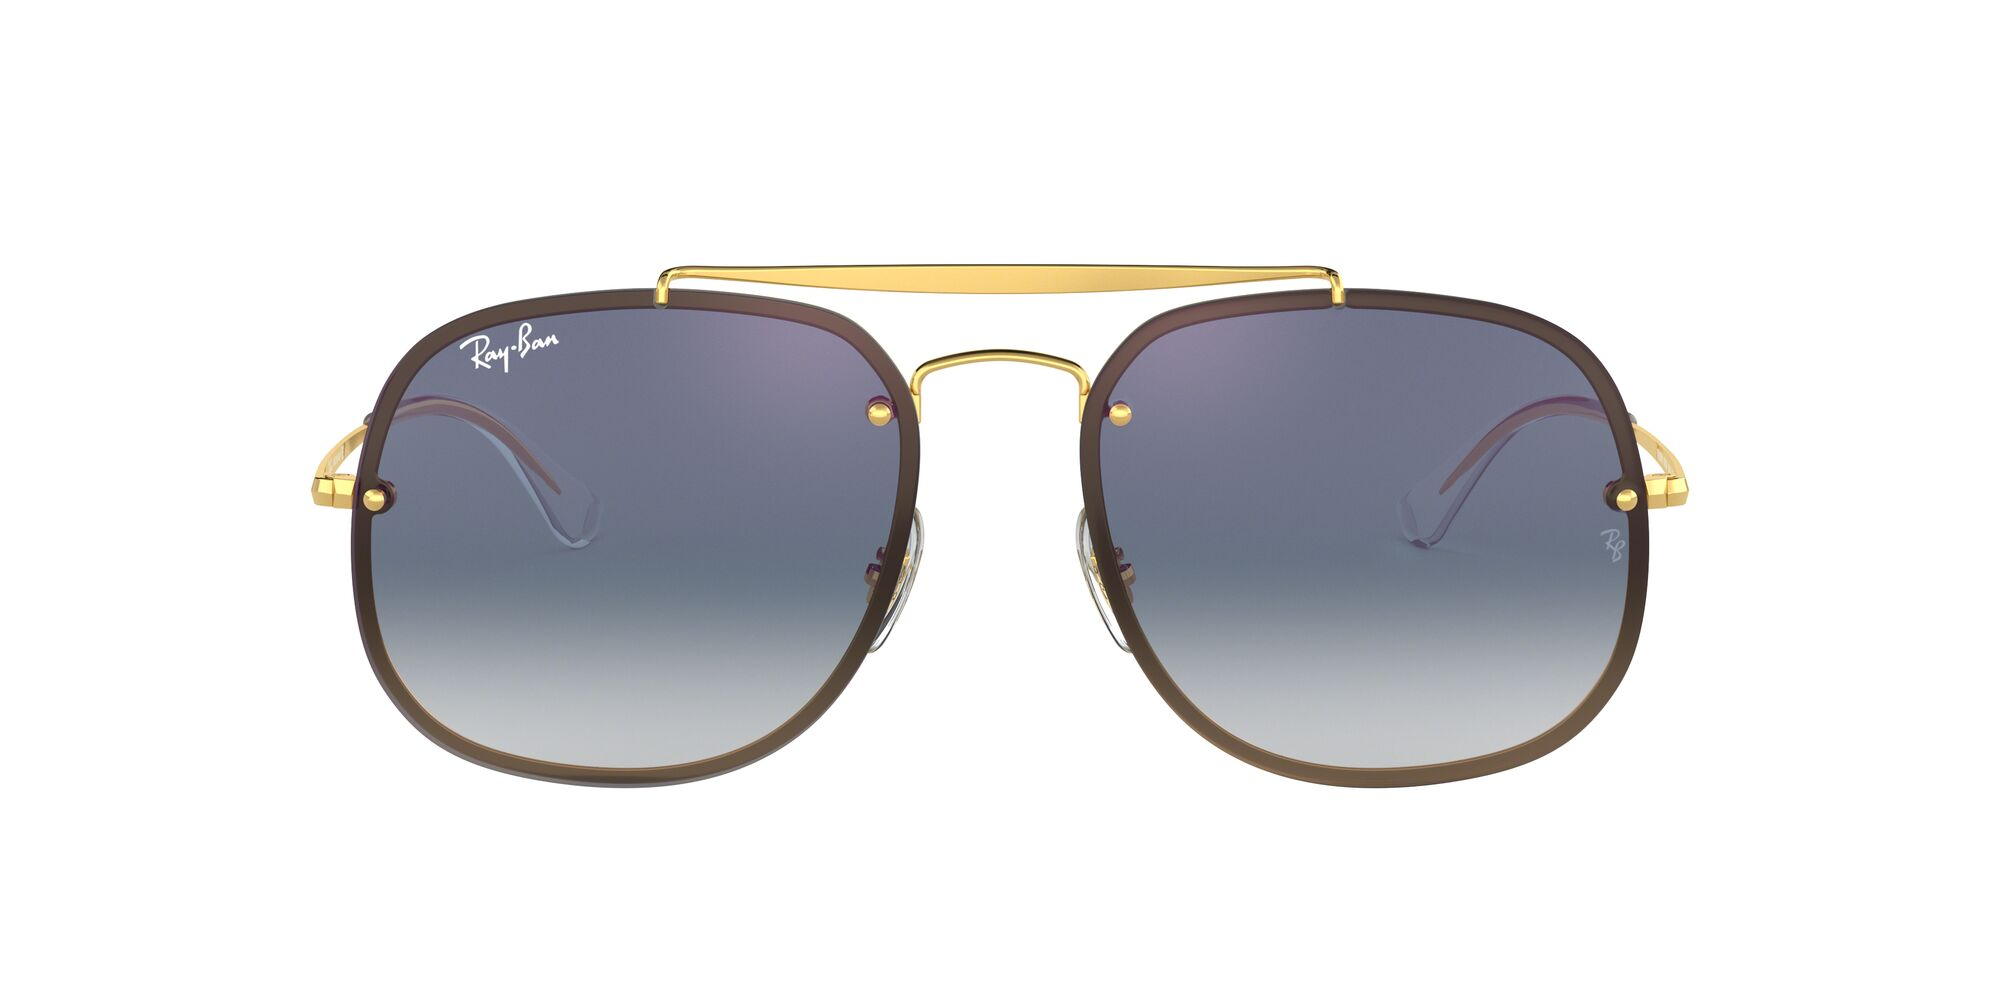 Front Ray-Ban Ray-Ban 0RB3583N 001/X0 58/16 Goud/Blauw